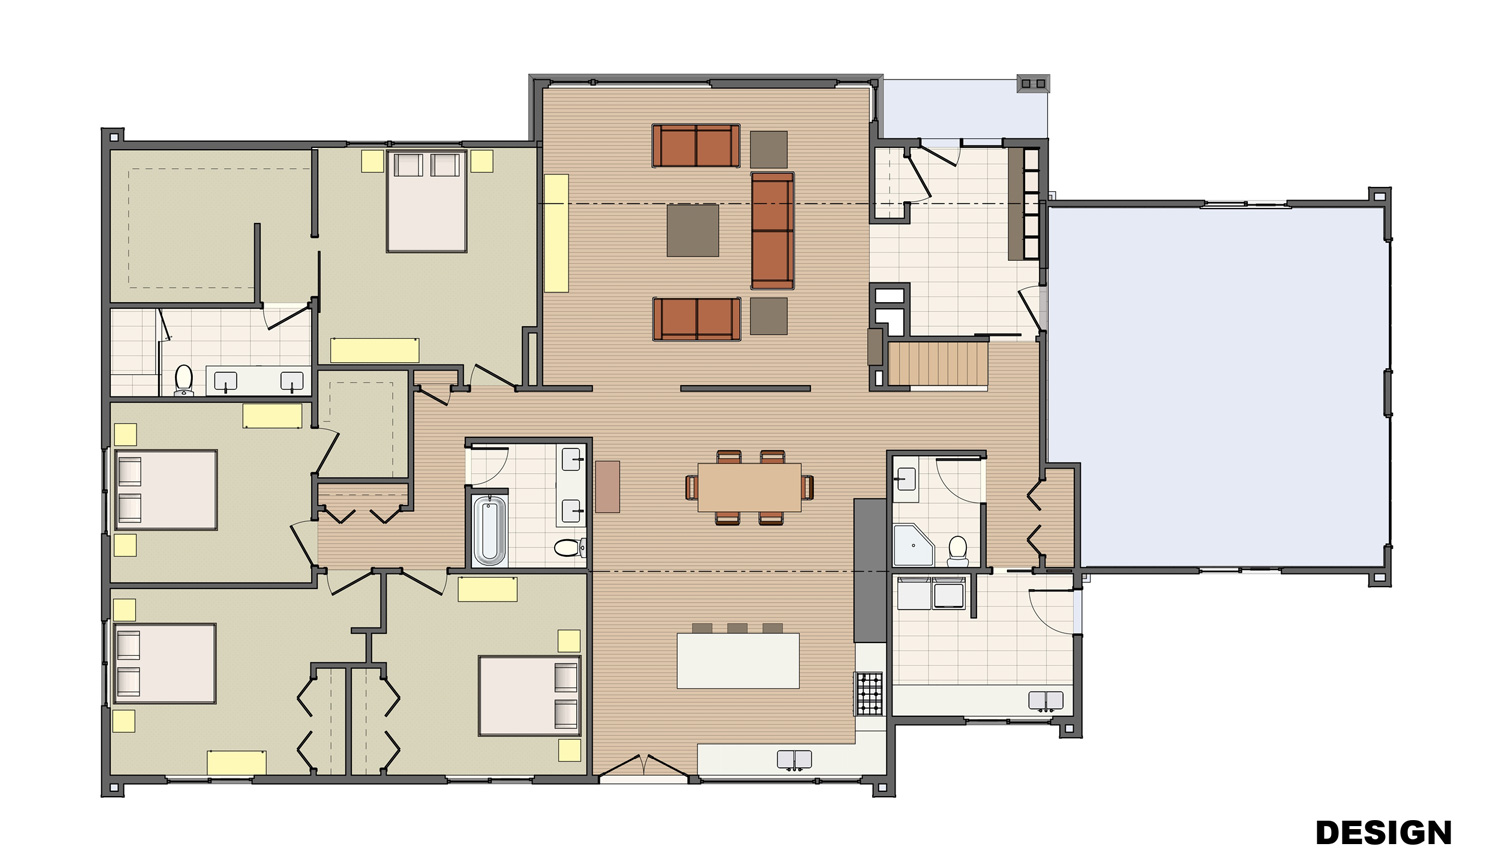 Redesigned Floor plan with Addition